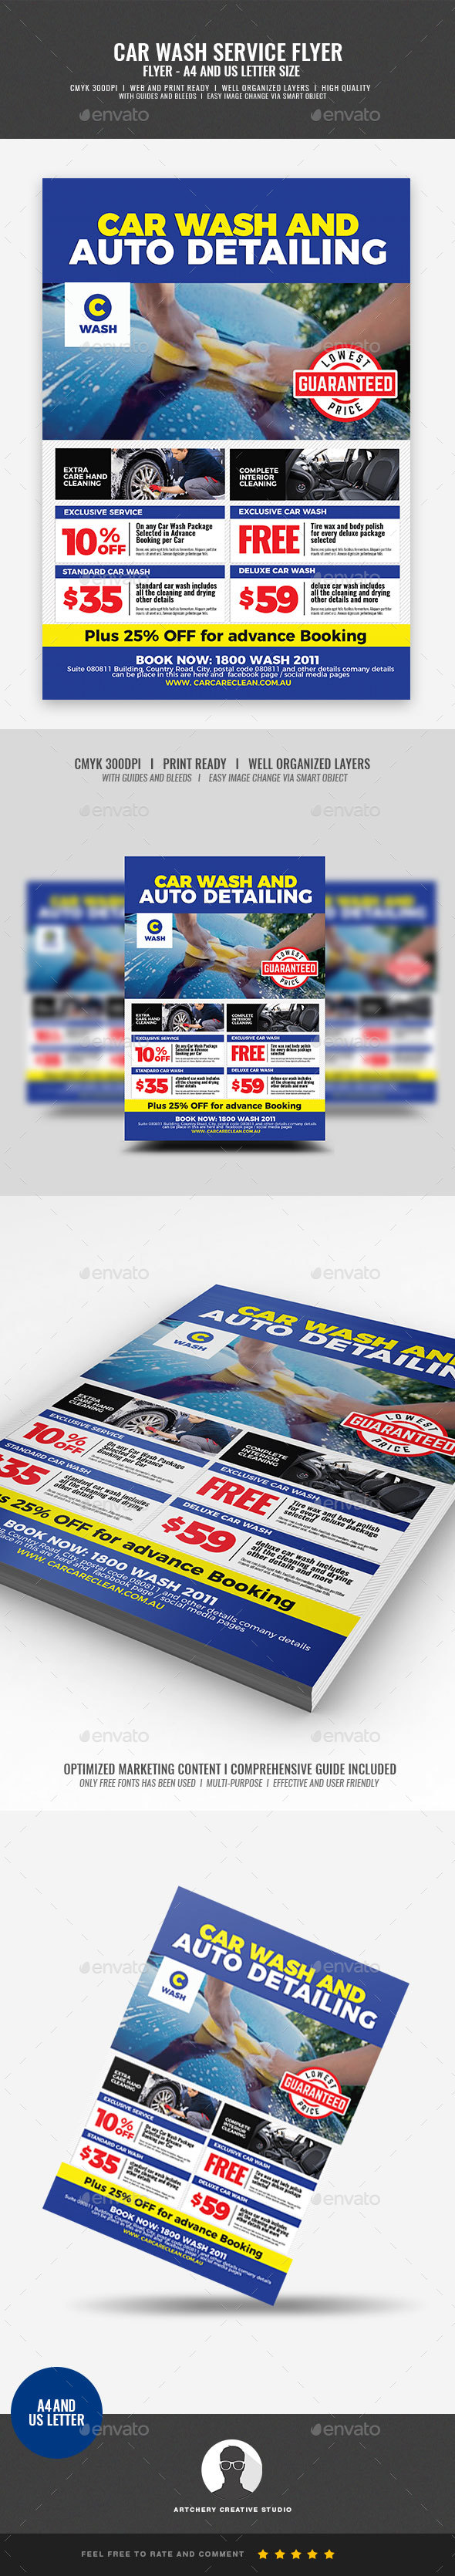 Car Wash And Auto Detailing Flyer By Artchery GraphicRiver Car Wash And Auto Detailing Flyer  21390056. Auto Detailing Flyer Template  Auto Detailing Flyer Template